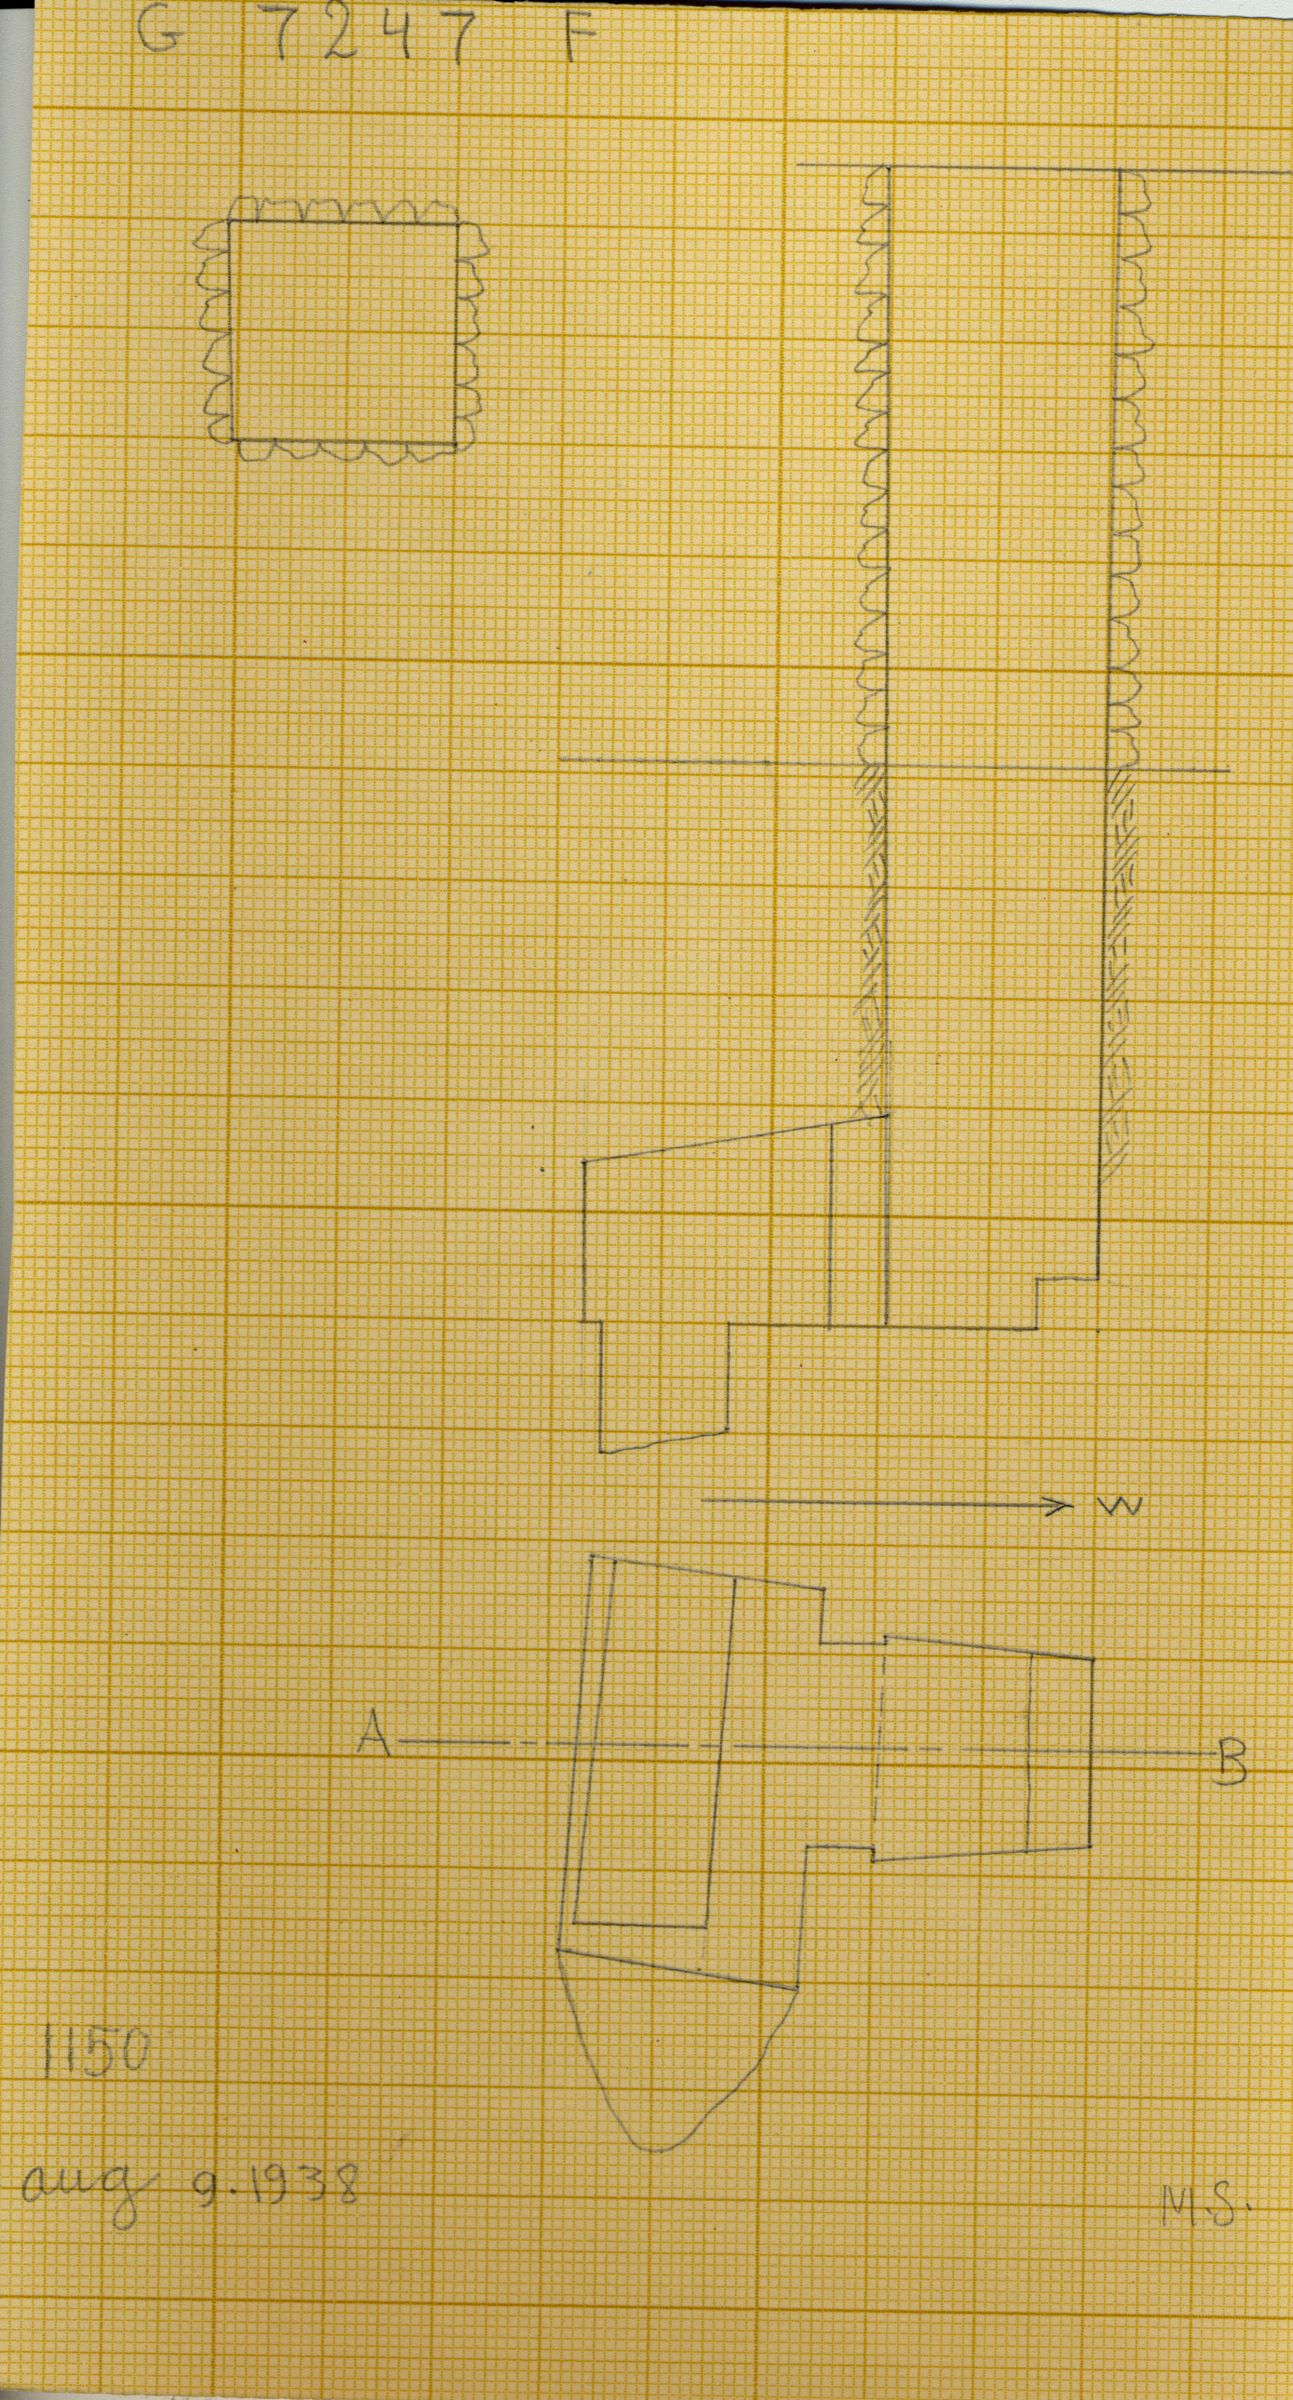 Maps and plans: G 7247, Shaft F